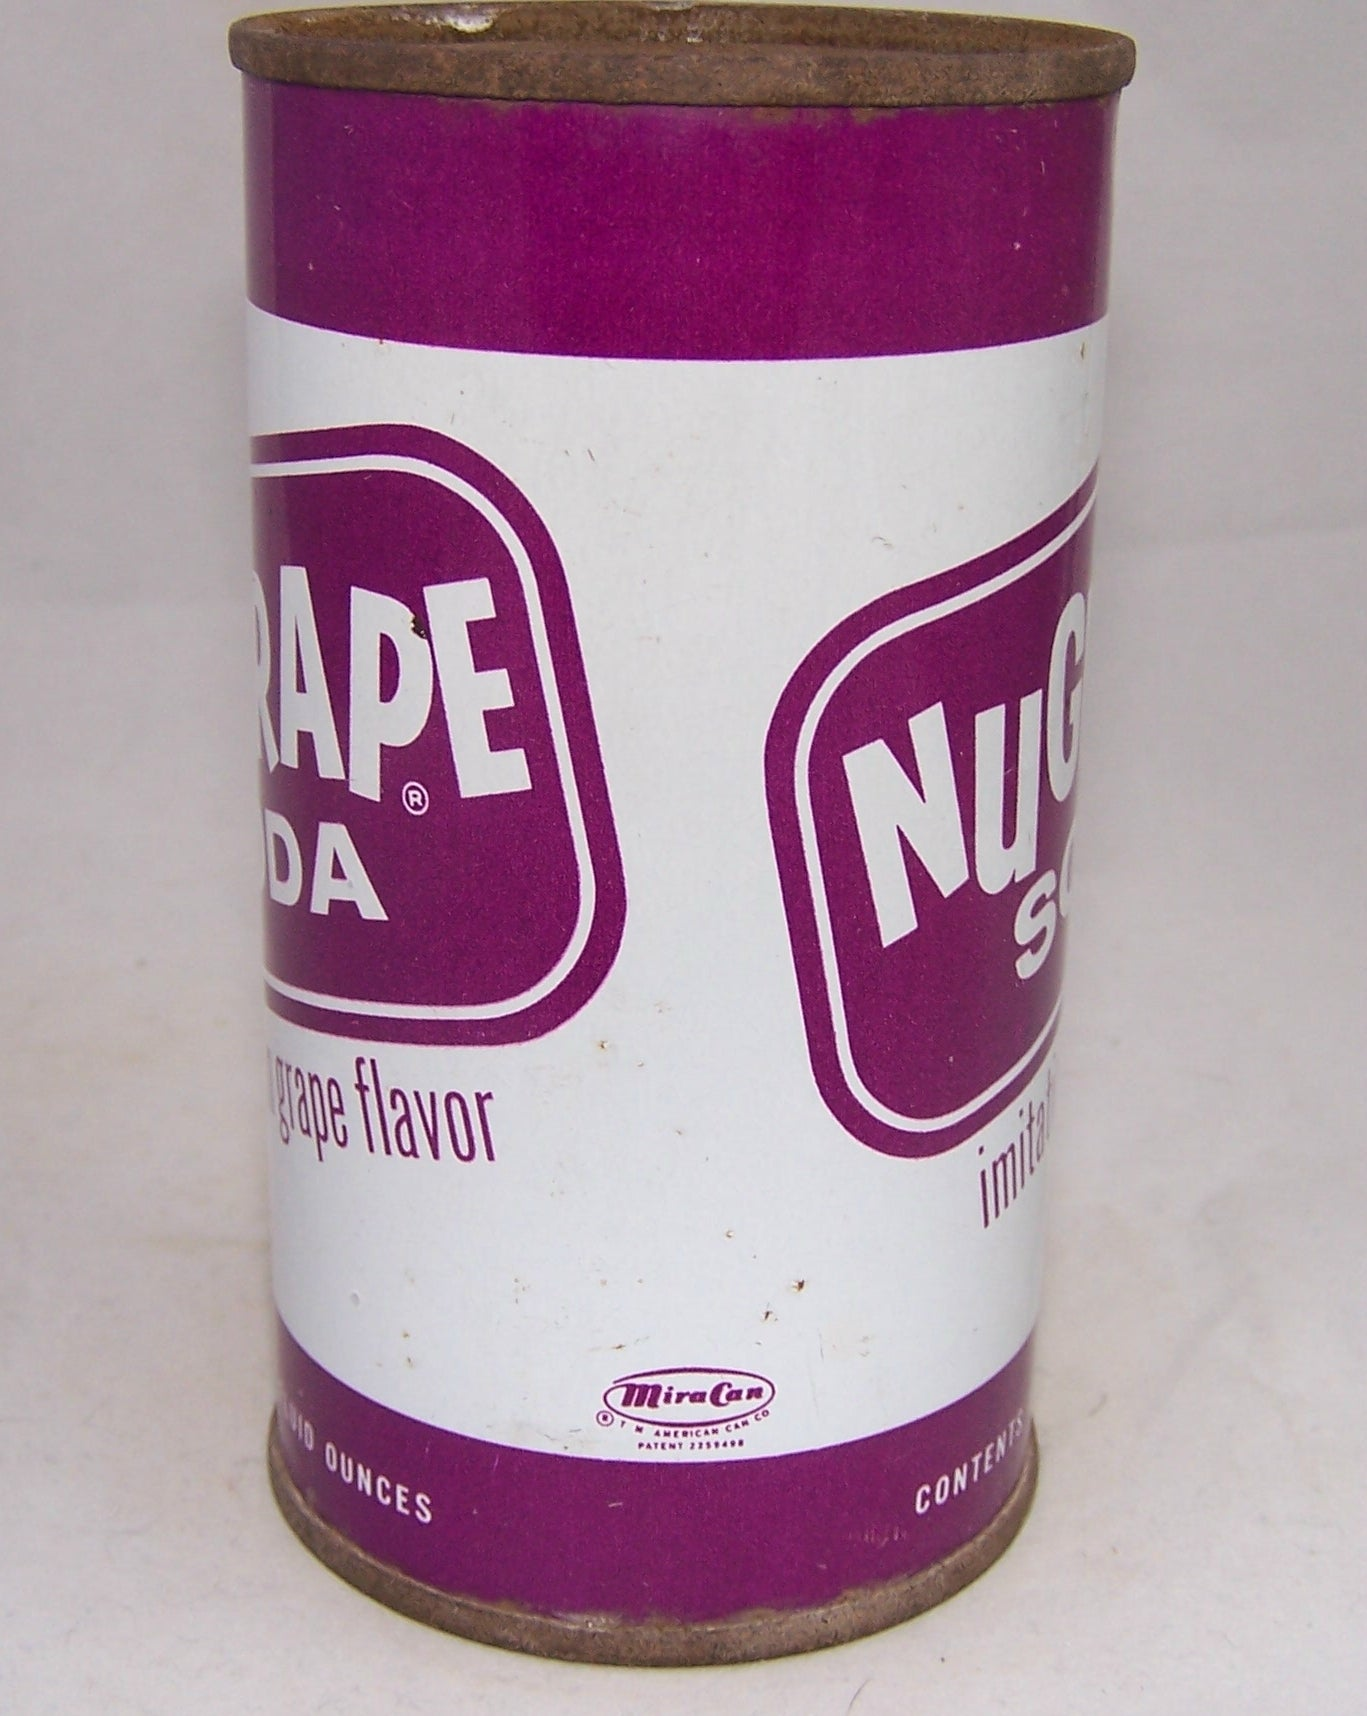 NuGrape Imitation Grape Flavor, Very Tough can, Grade 1 Sold on 09/03/17